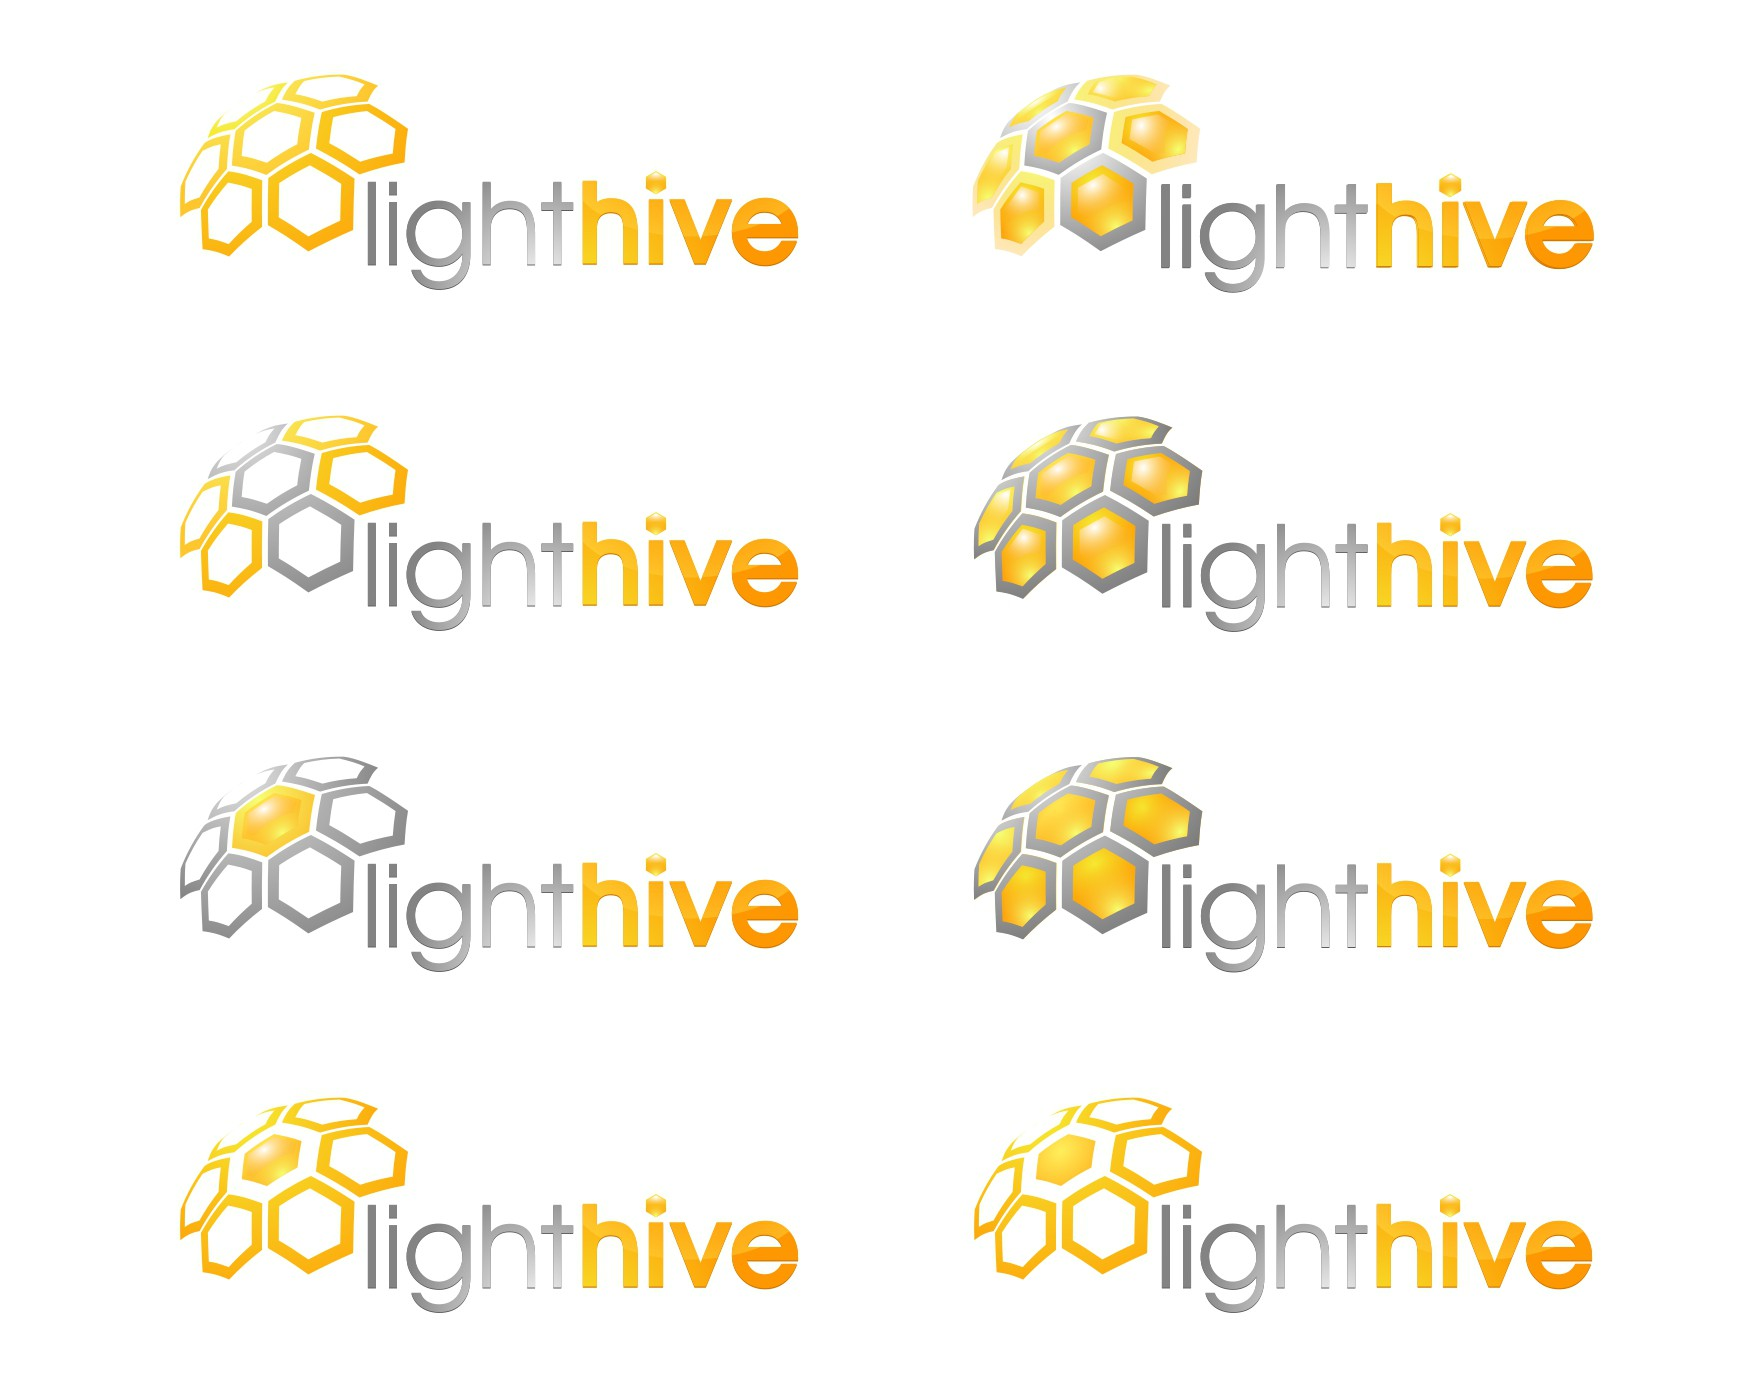 Help lighthive with a new logo